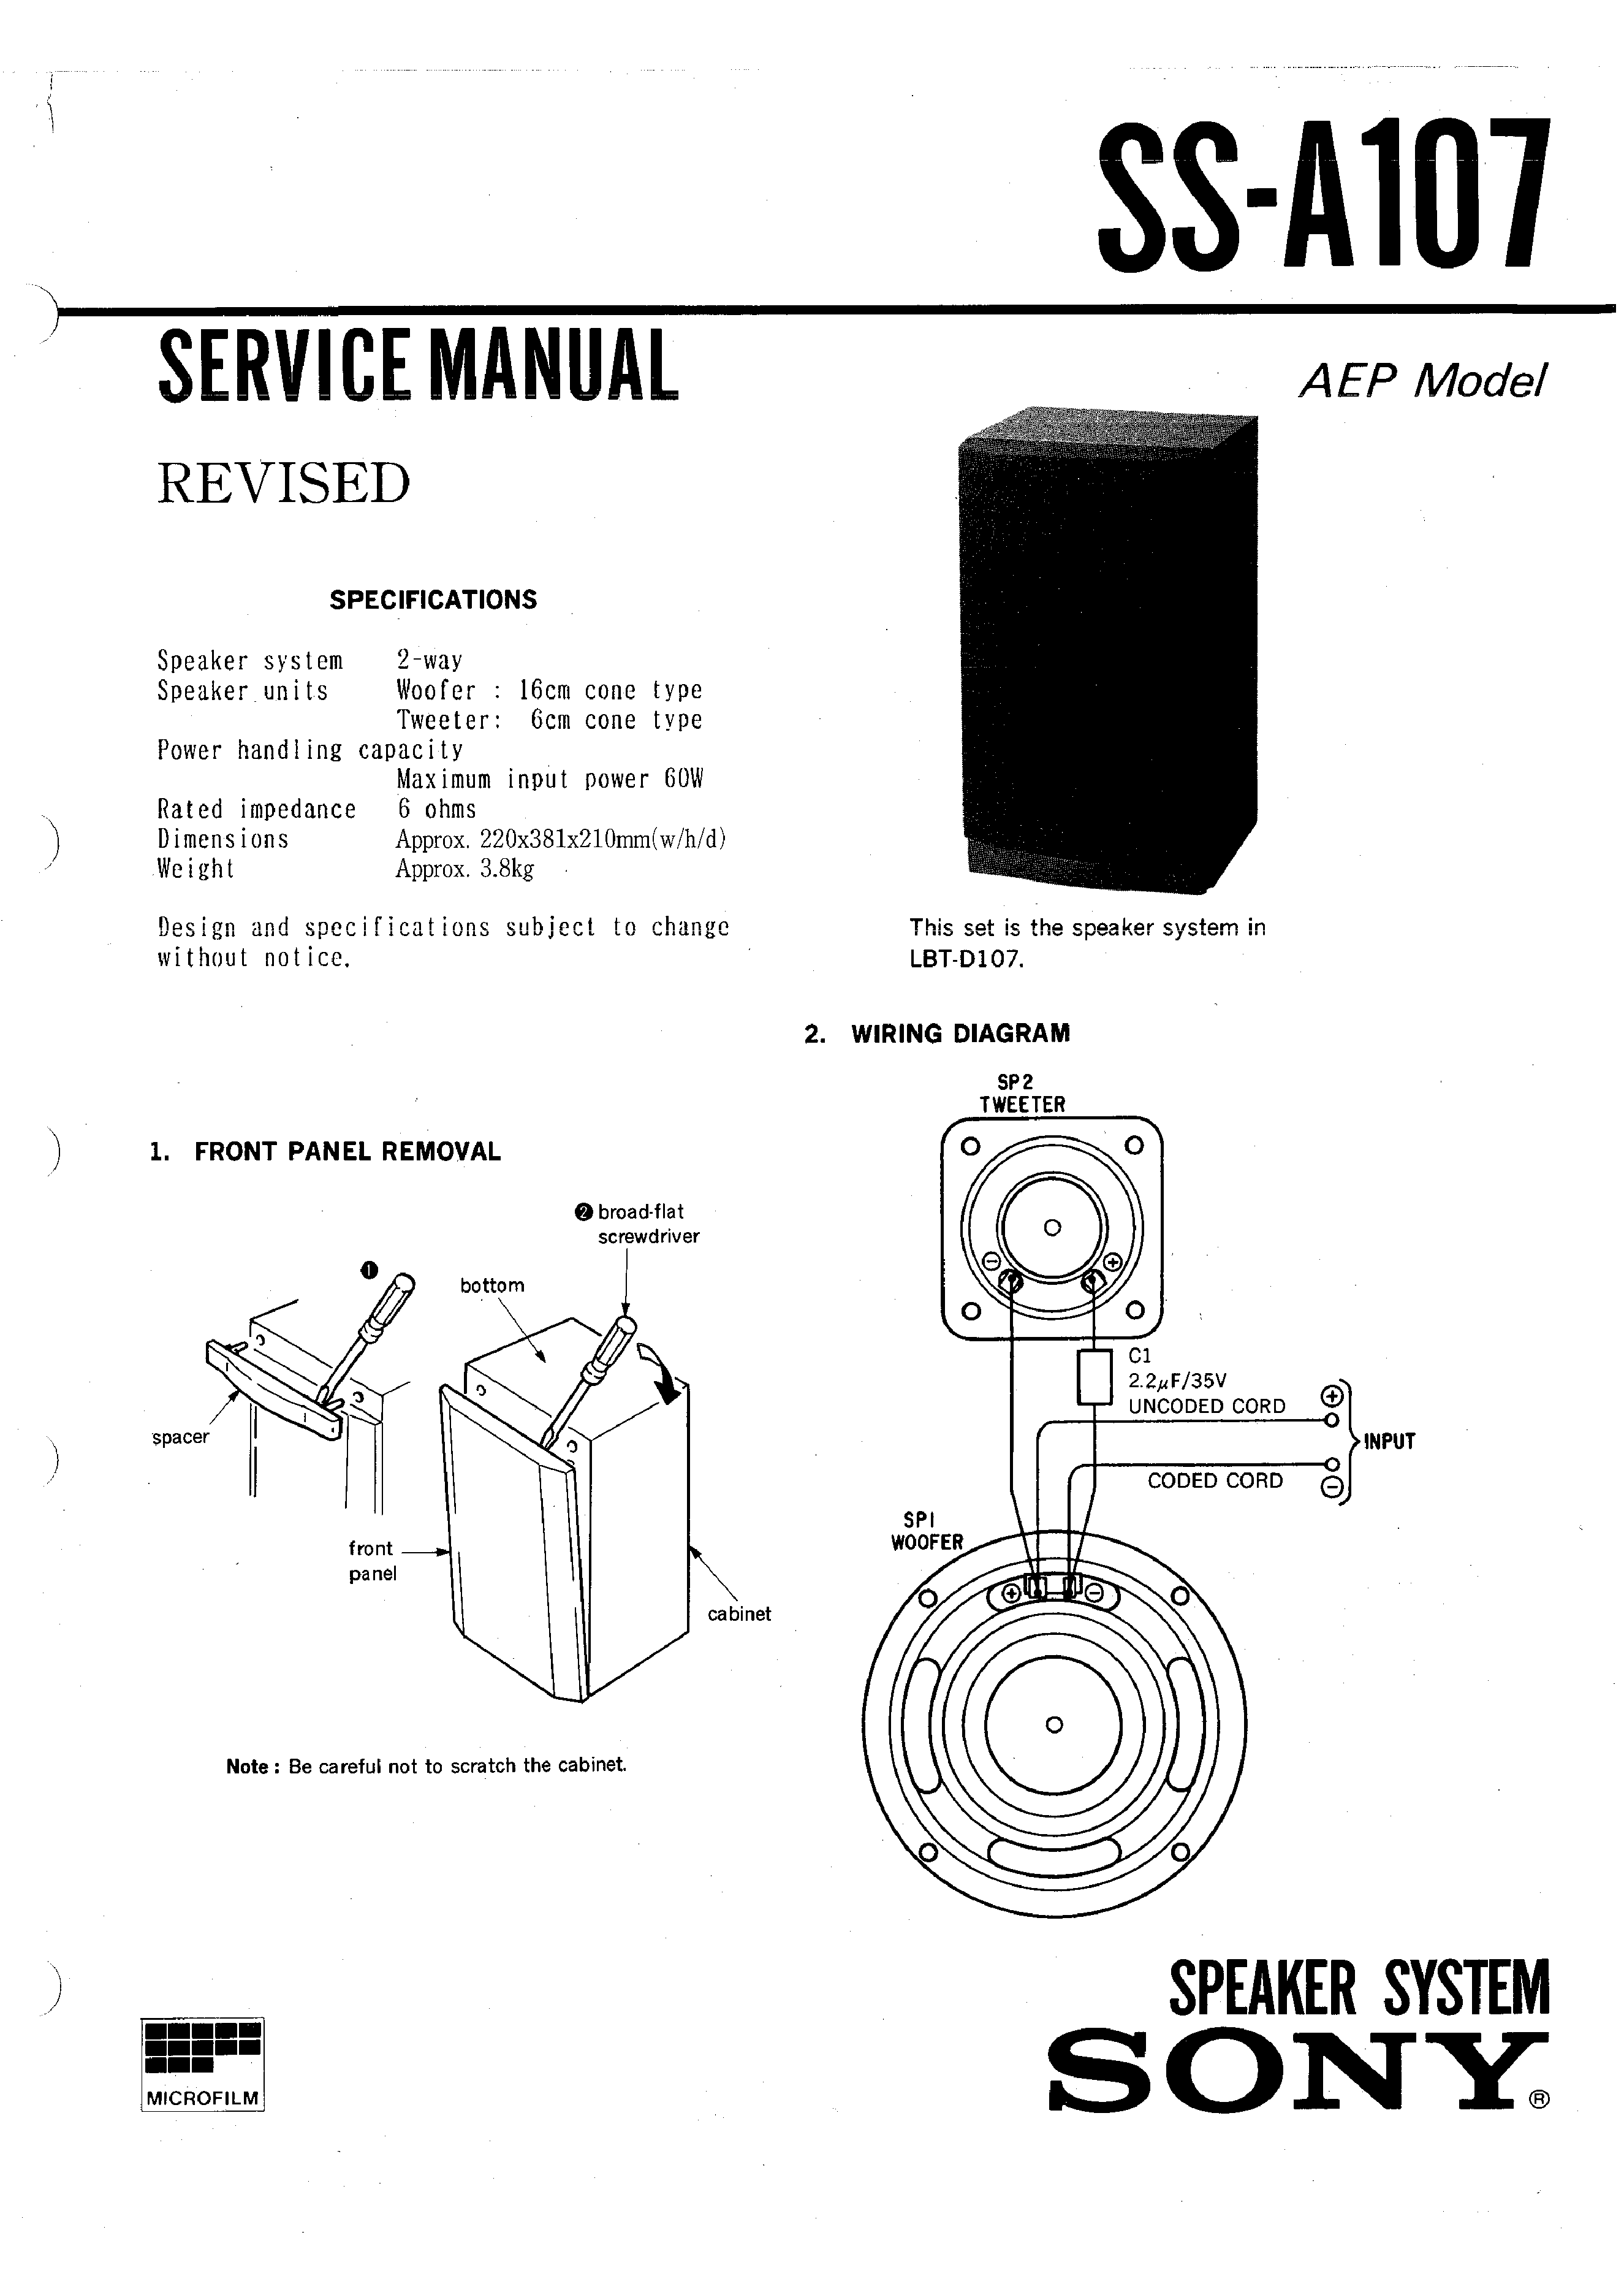 Sony Ssa107 Service Manual Immediate Download